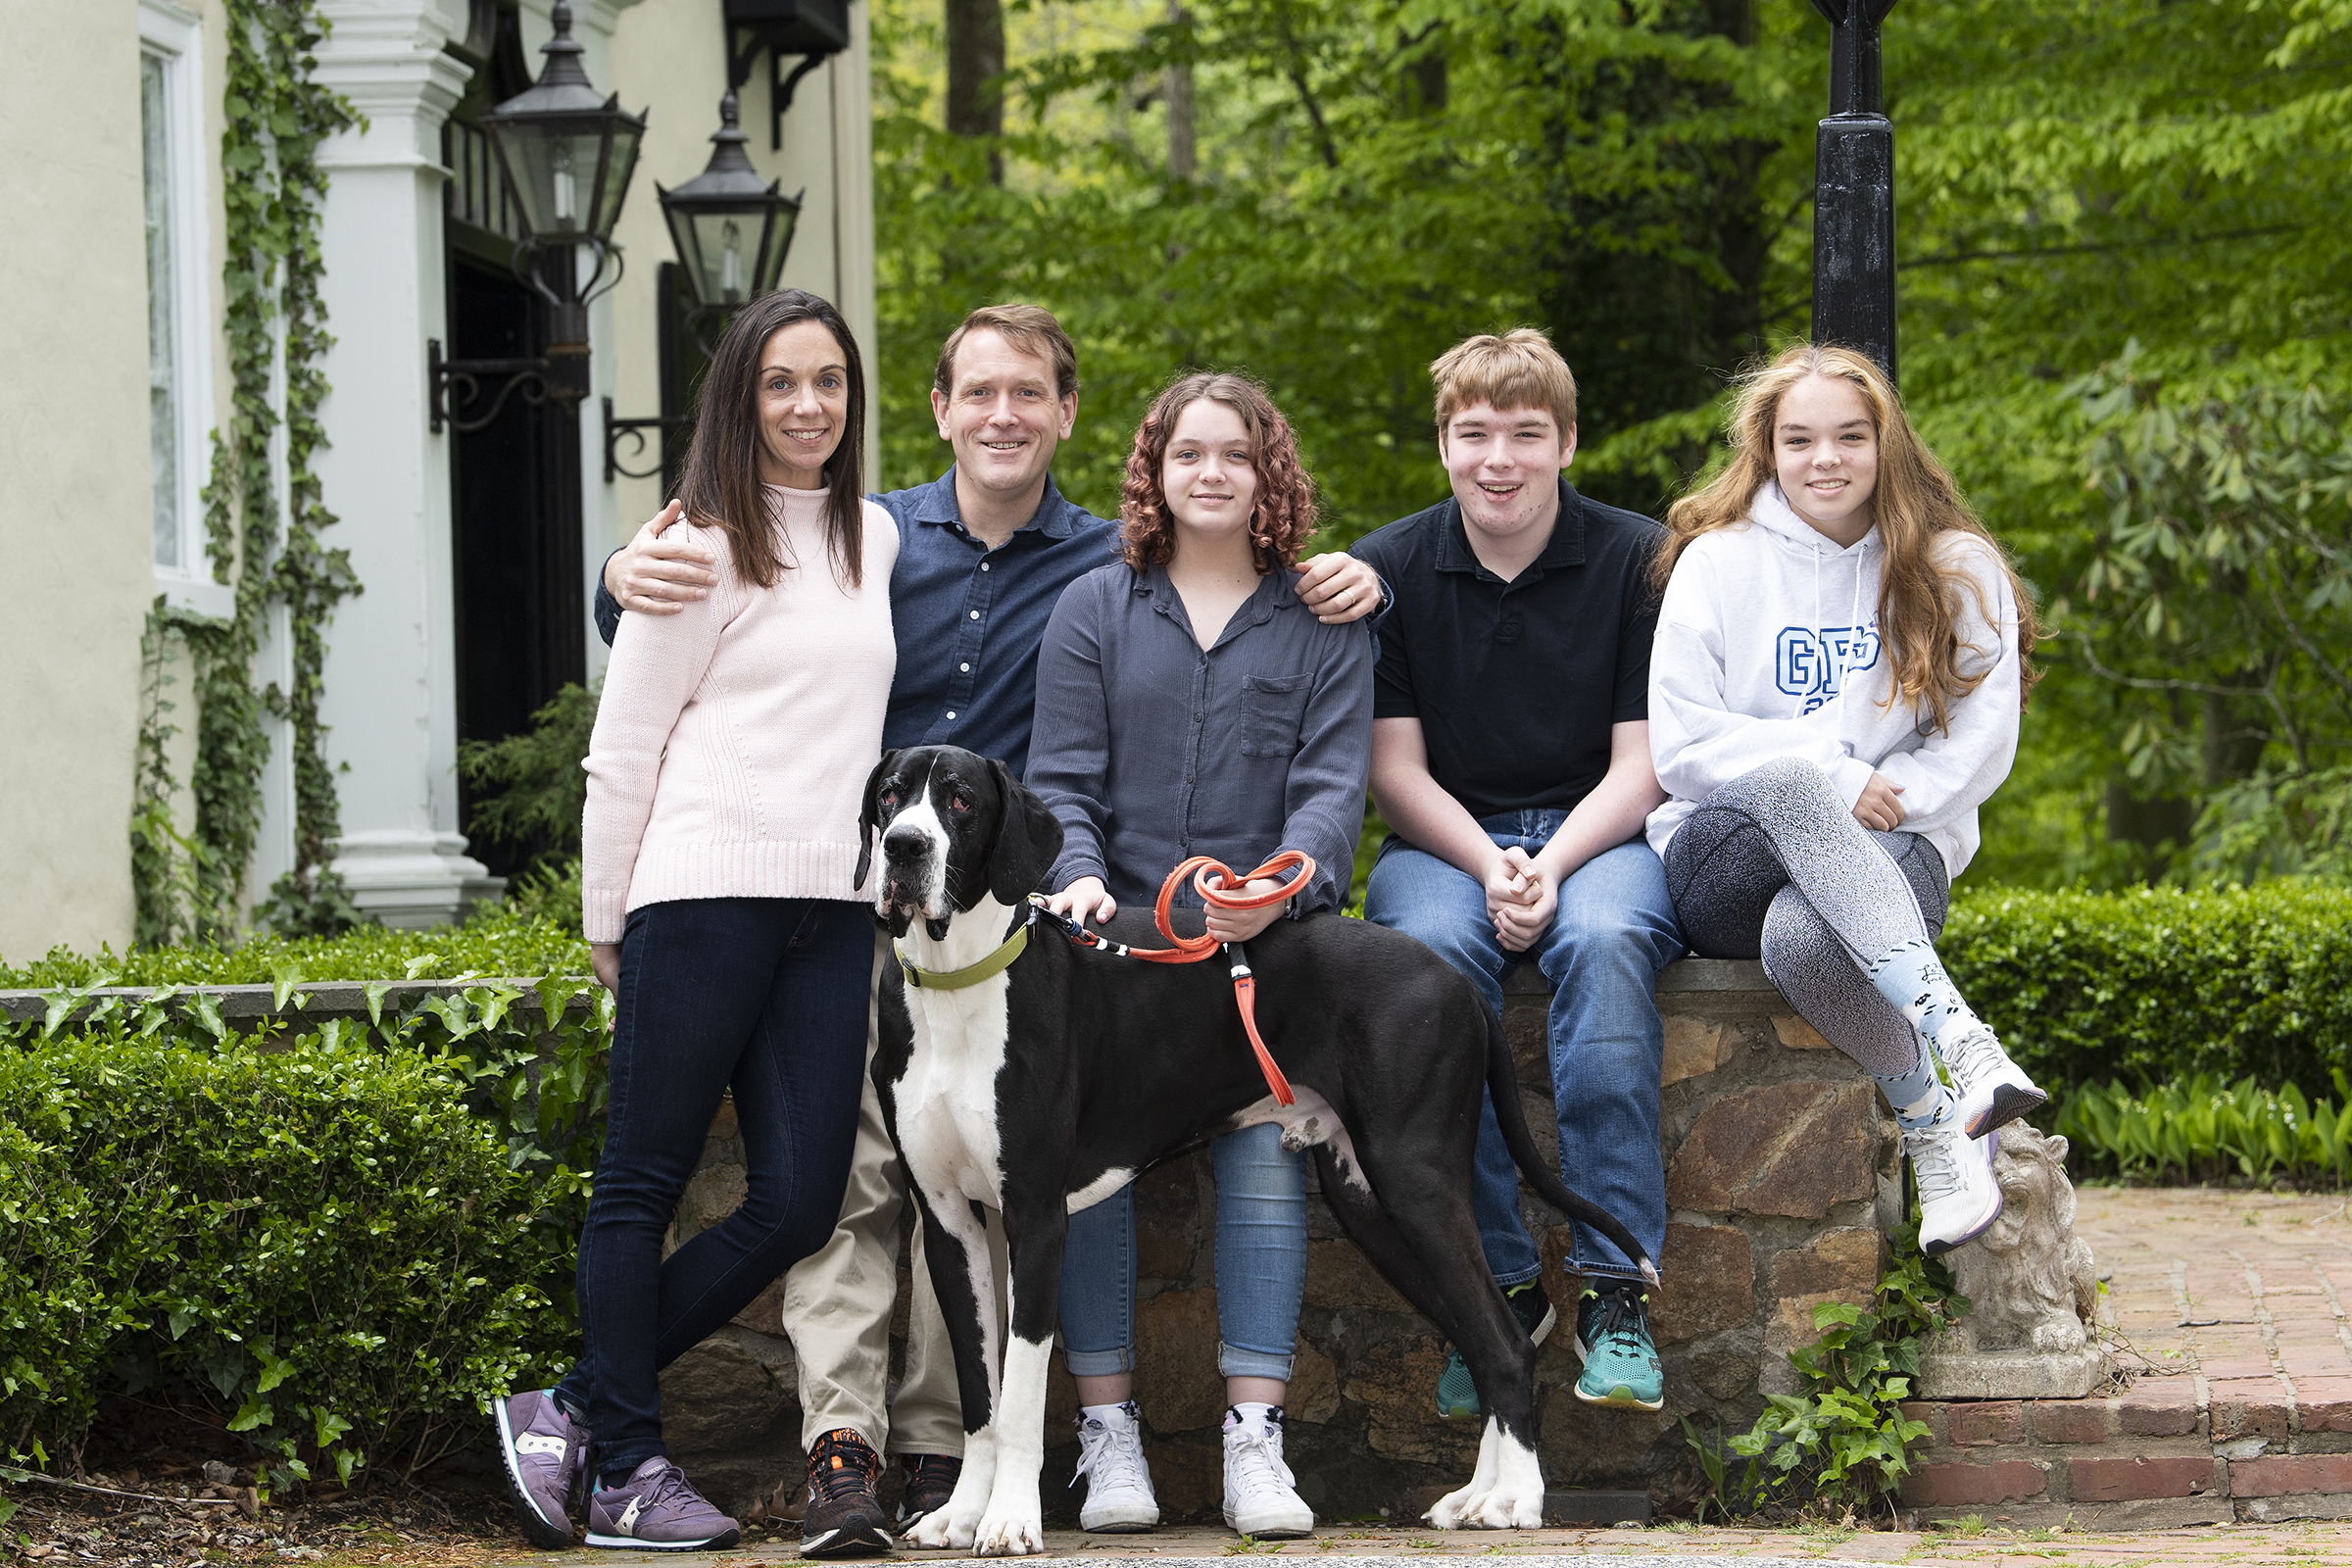 """From left, Genevieve McCormack, William McCormack, Campbell McCormack, and twins, Ted and Hadley McCormack, pose for a portrait with their dog, """"Norman,"""" at their home in Haverford."""